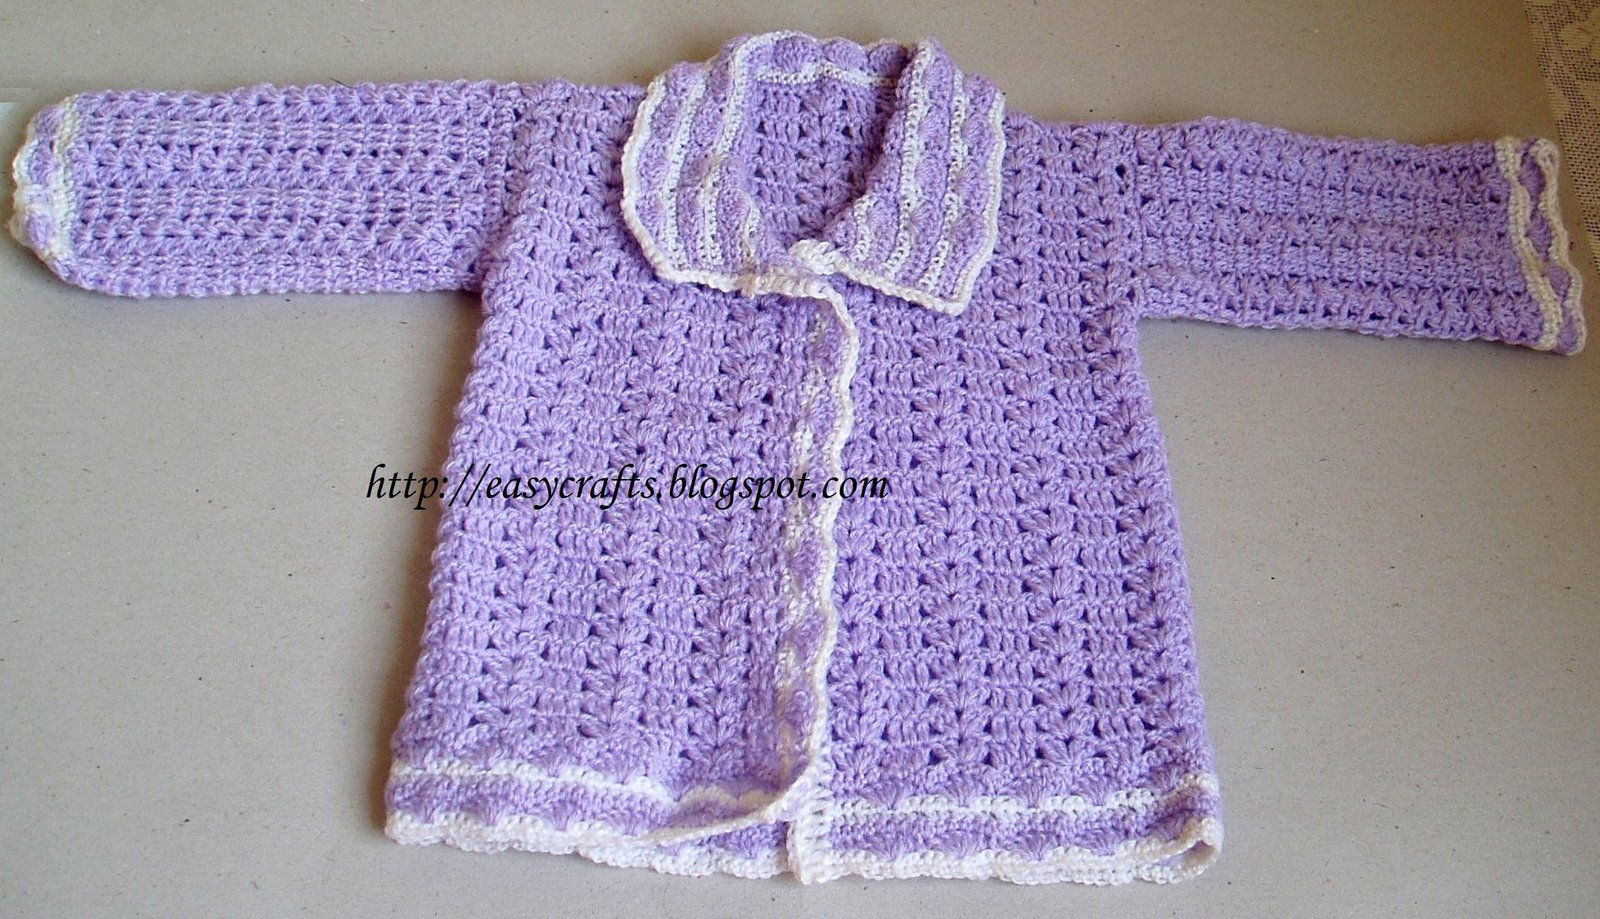 Easy Crochet Baby Sweater Pattern Free : Easy Crafts - Explore your creativity: March 2009